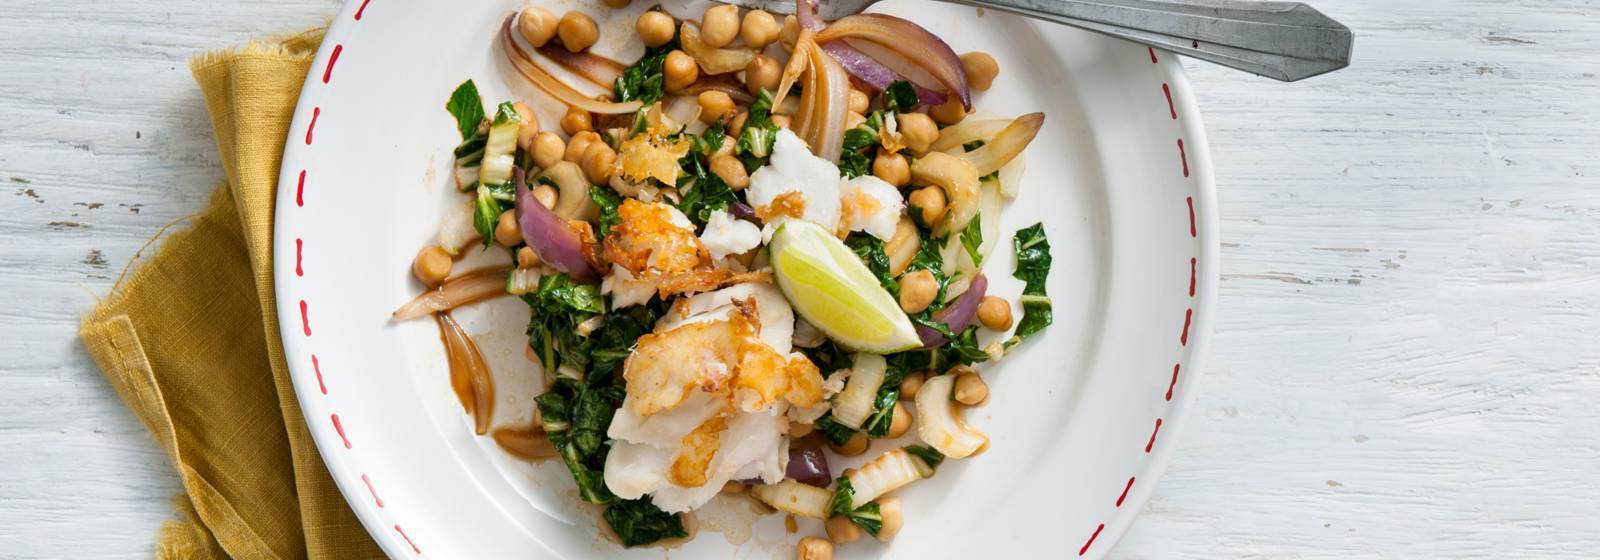 Stir-fried bok choy with chickpeas and cod